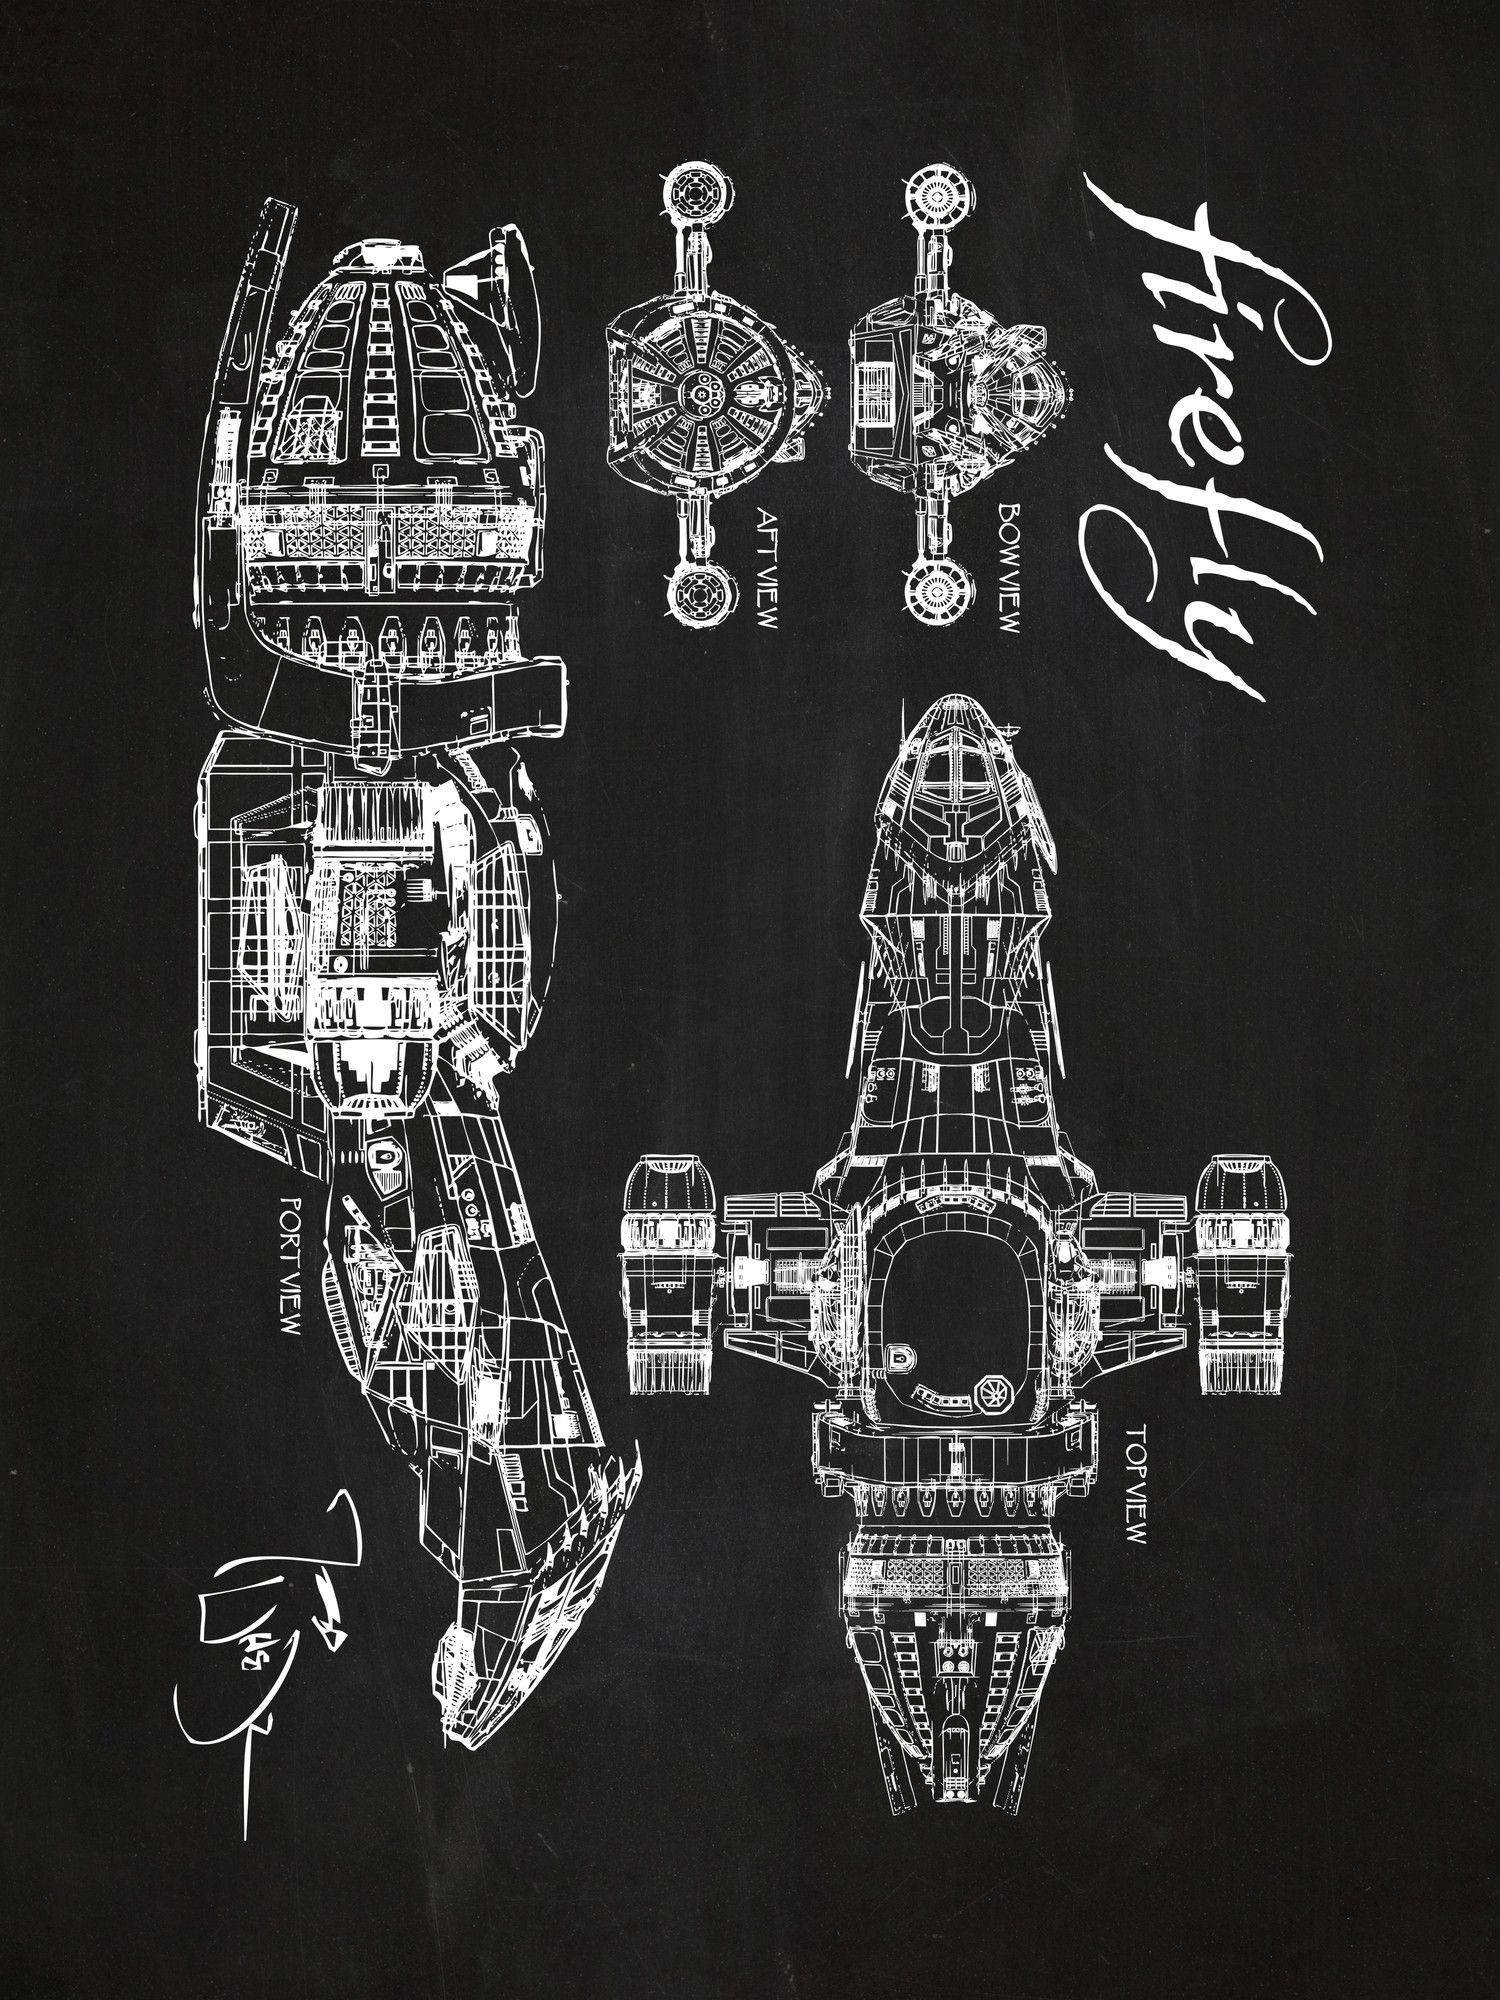 Firefly serenity blueprint graphic art poster in chalkboardwhite firefly serenity blueprint graphic art poster in chalkboardwhite ink malvernweather Gallery